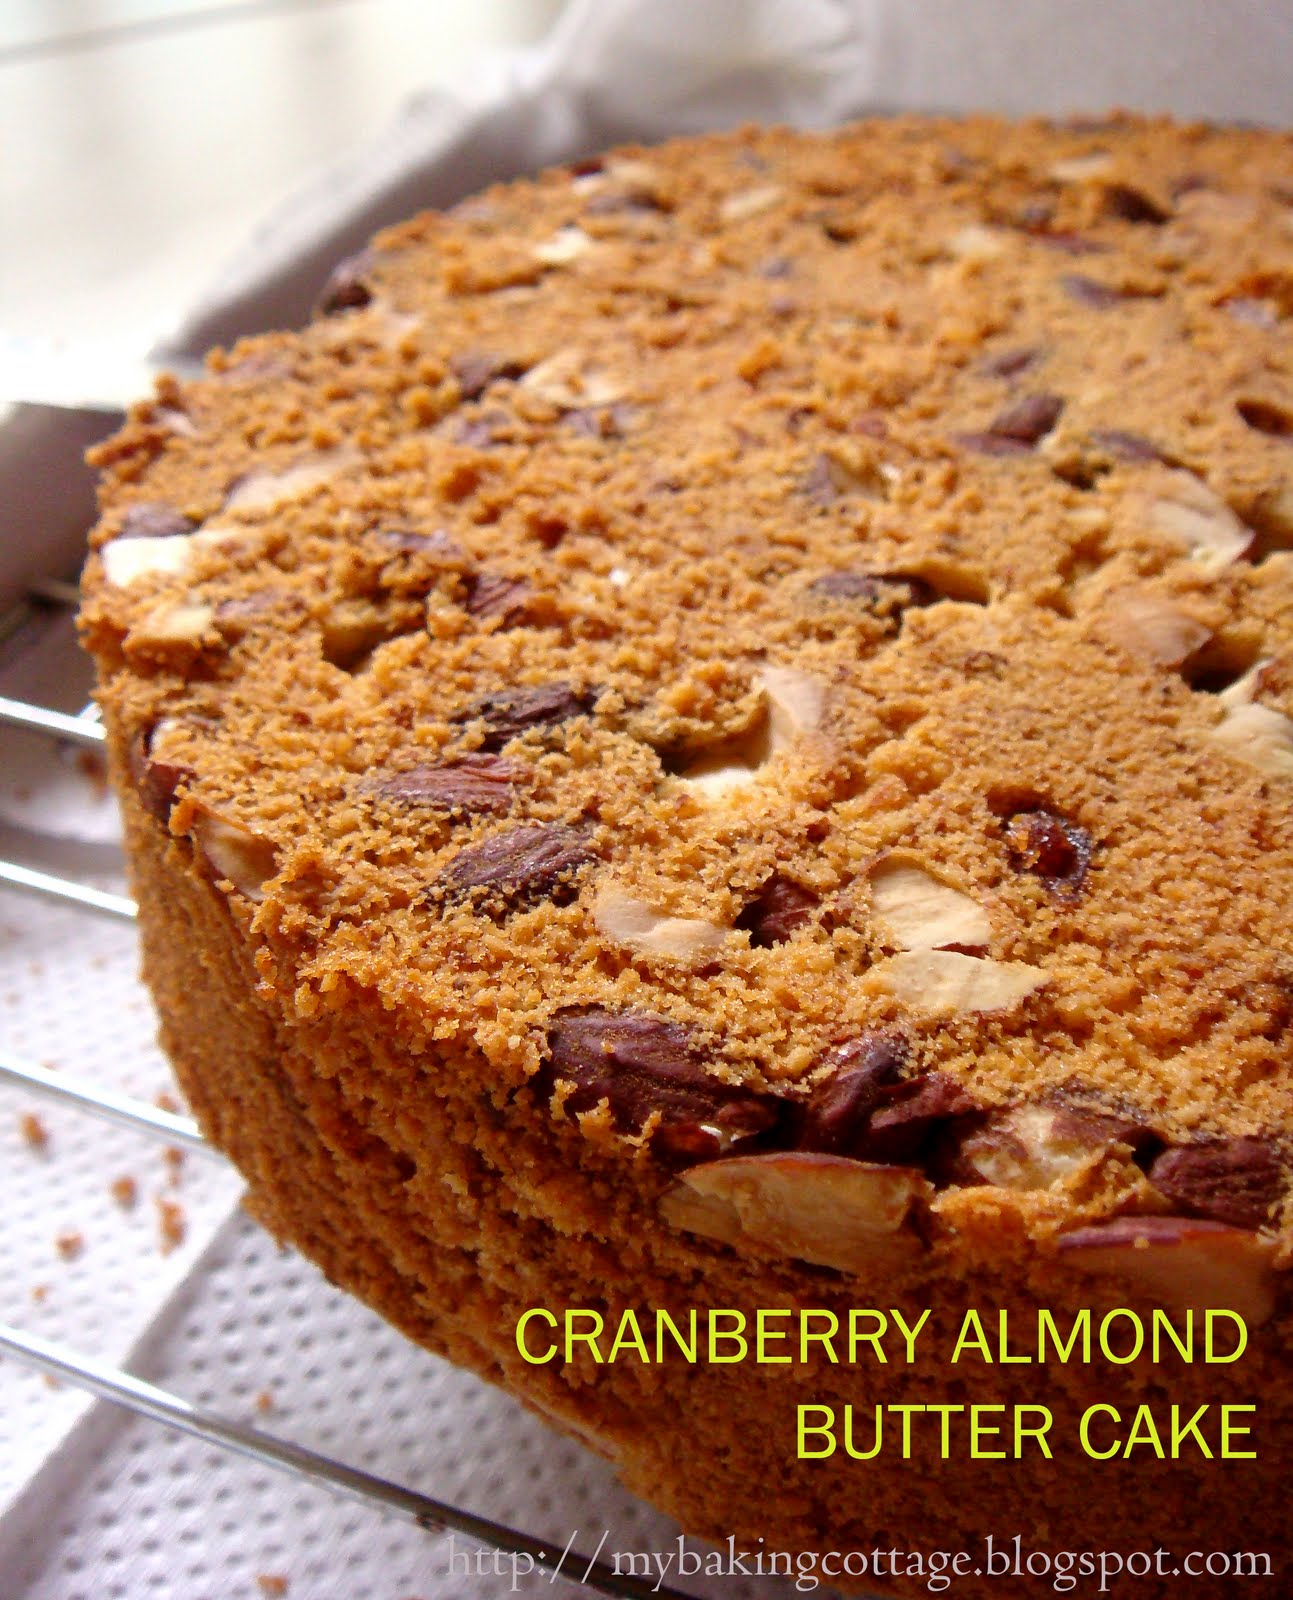 My Baking Cottage: Cranberry Almond Butter Cake